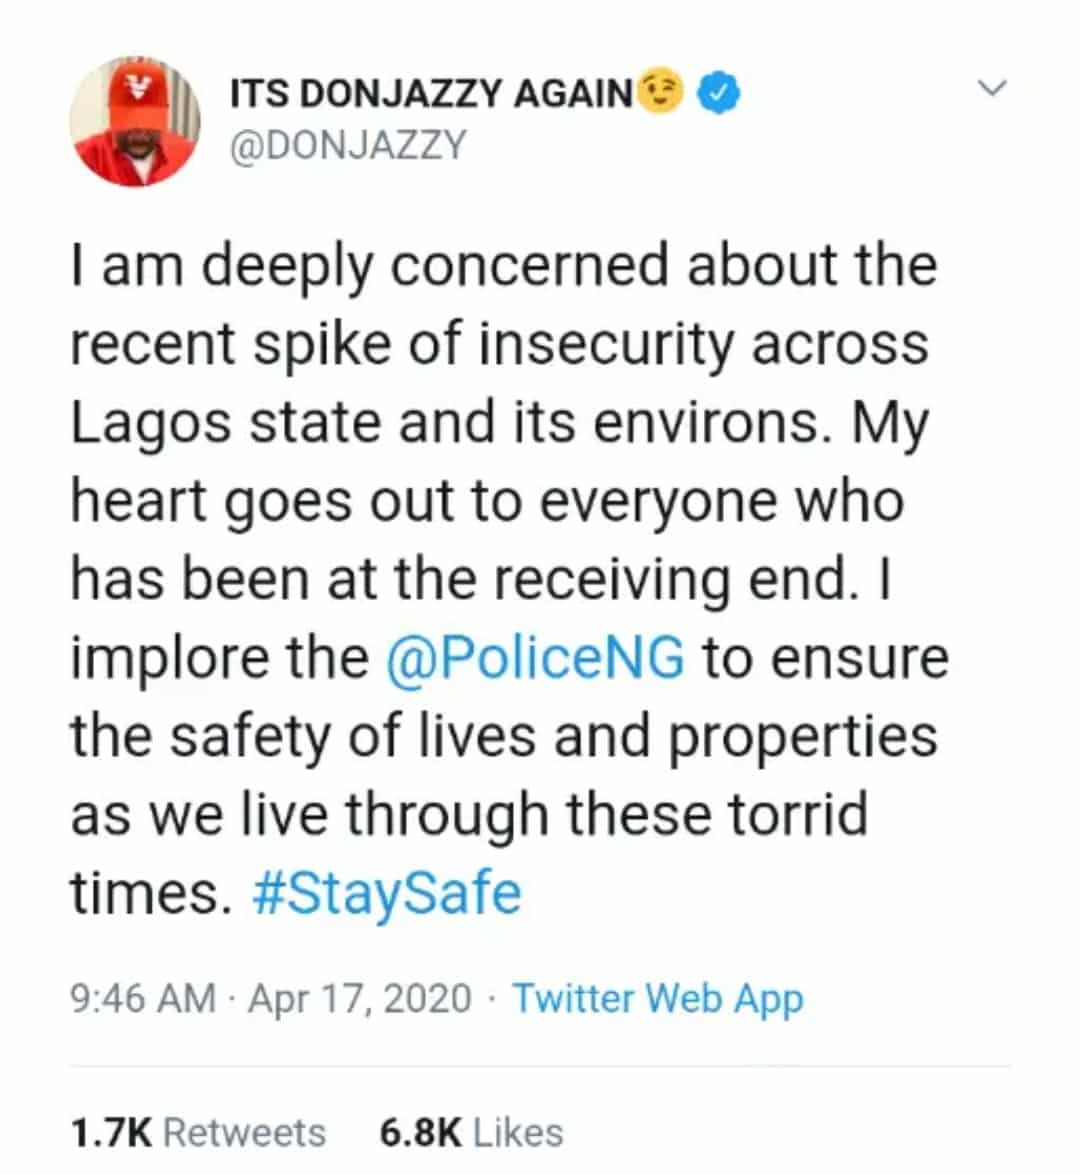 COVID-19 Lockdown: Don Jazzy begs Nigerian police to safeguard the lives and properties of Lagosians